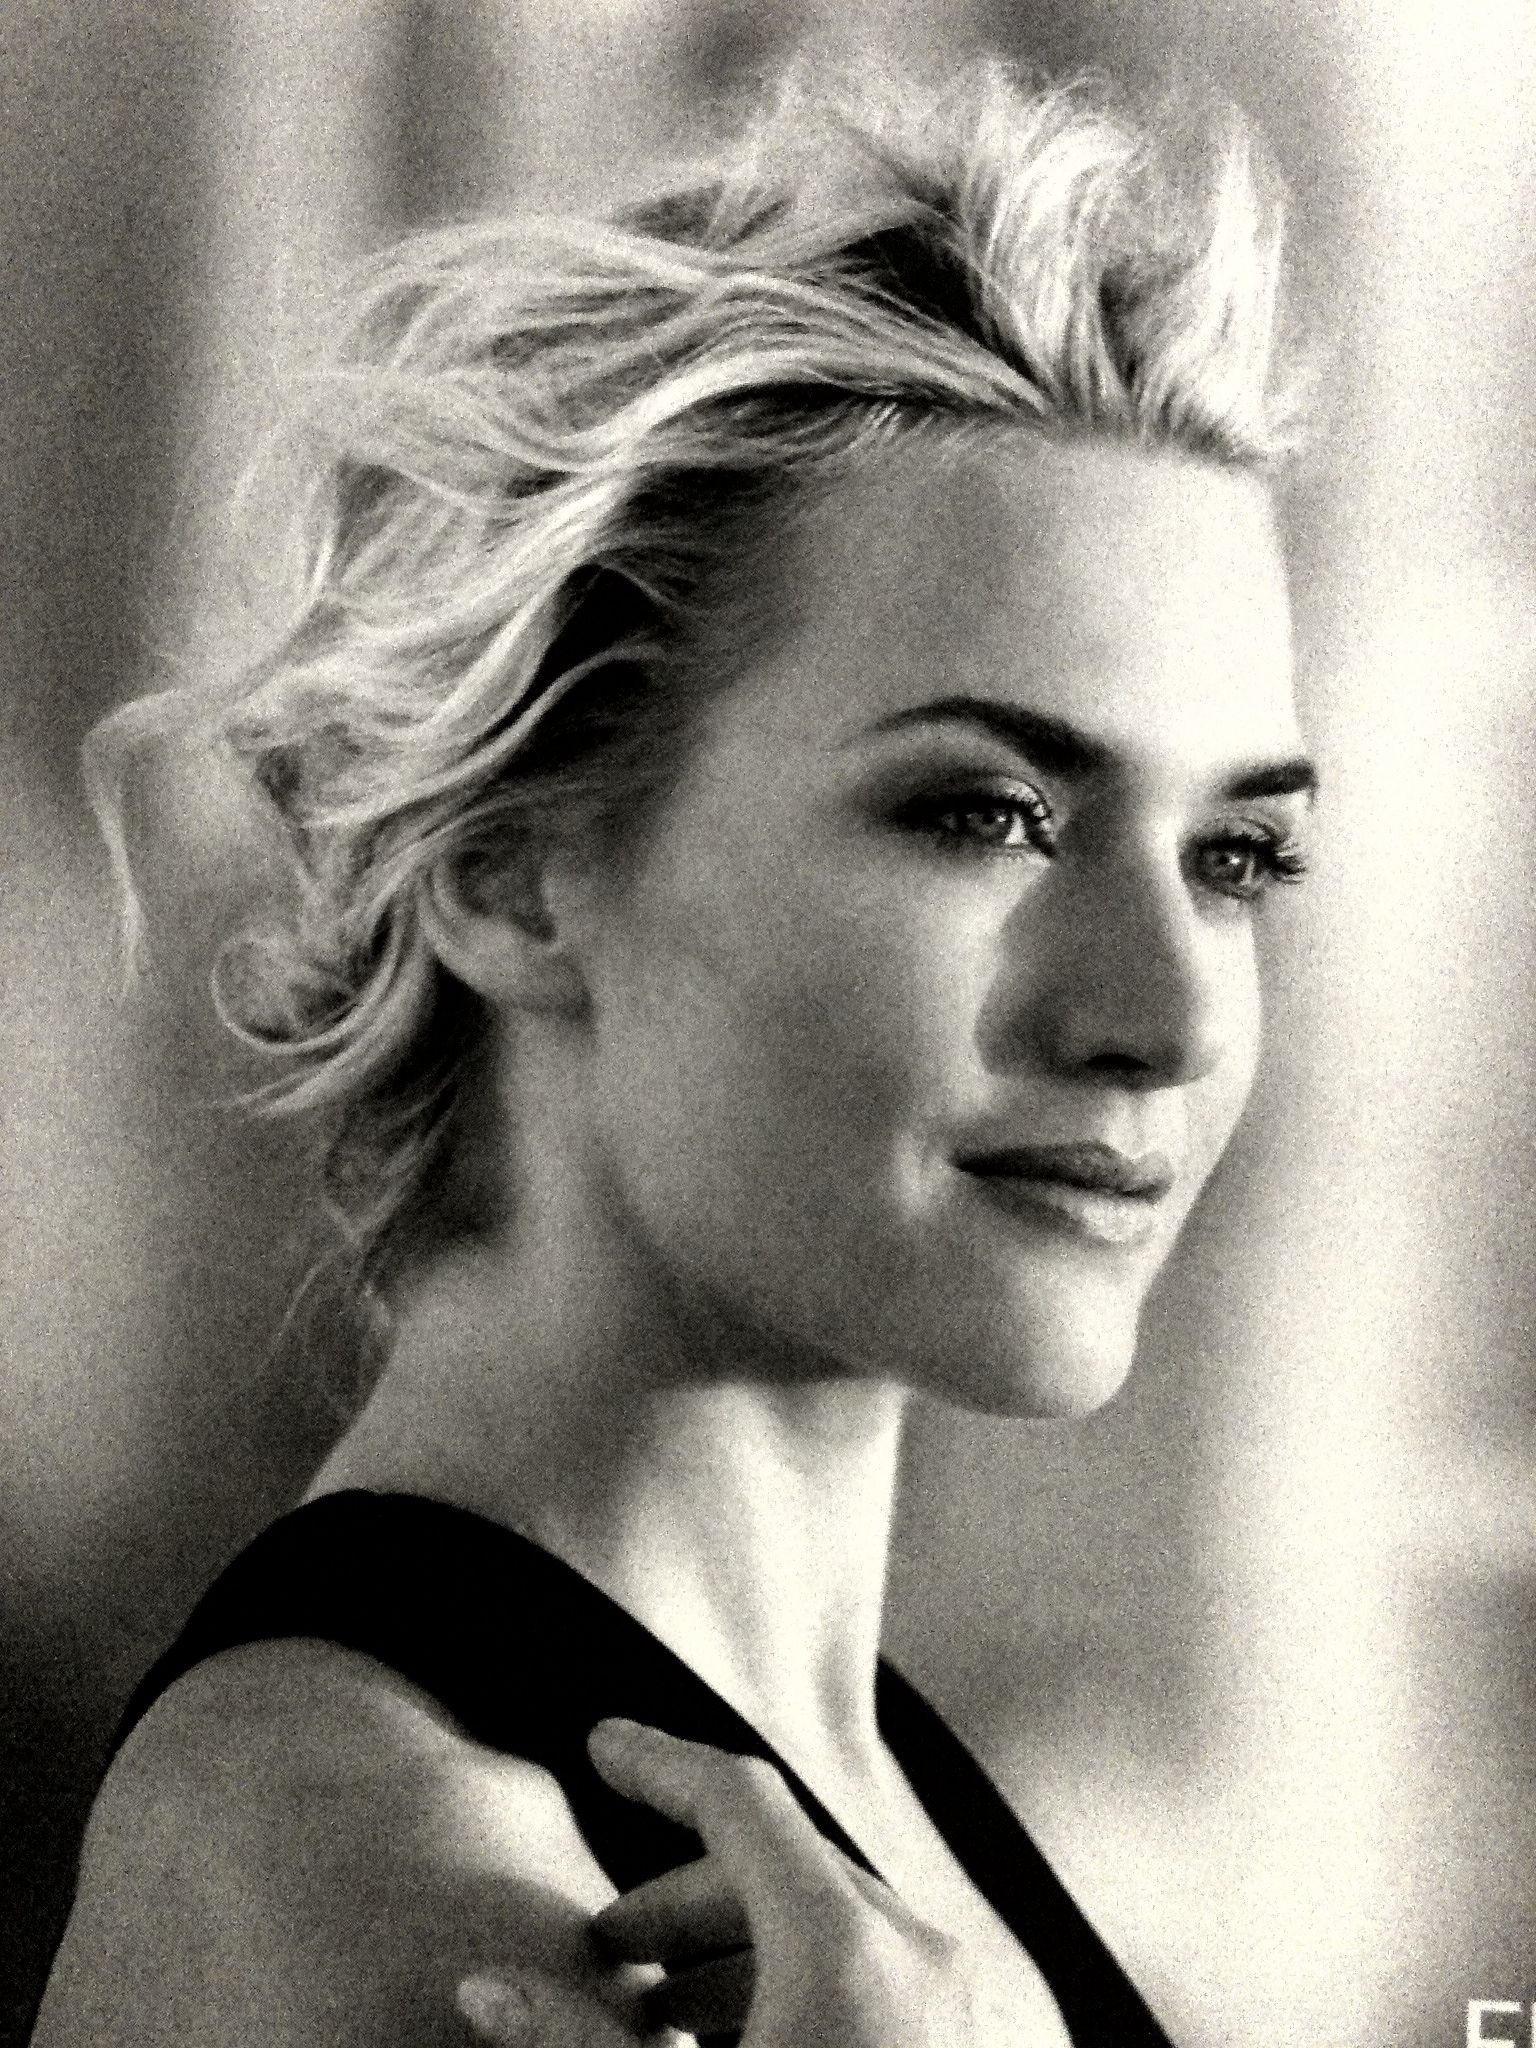 Kate Winslet Longines Advert Kate Winslet People Pretty People